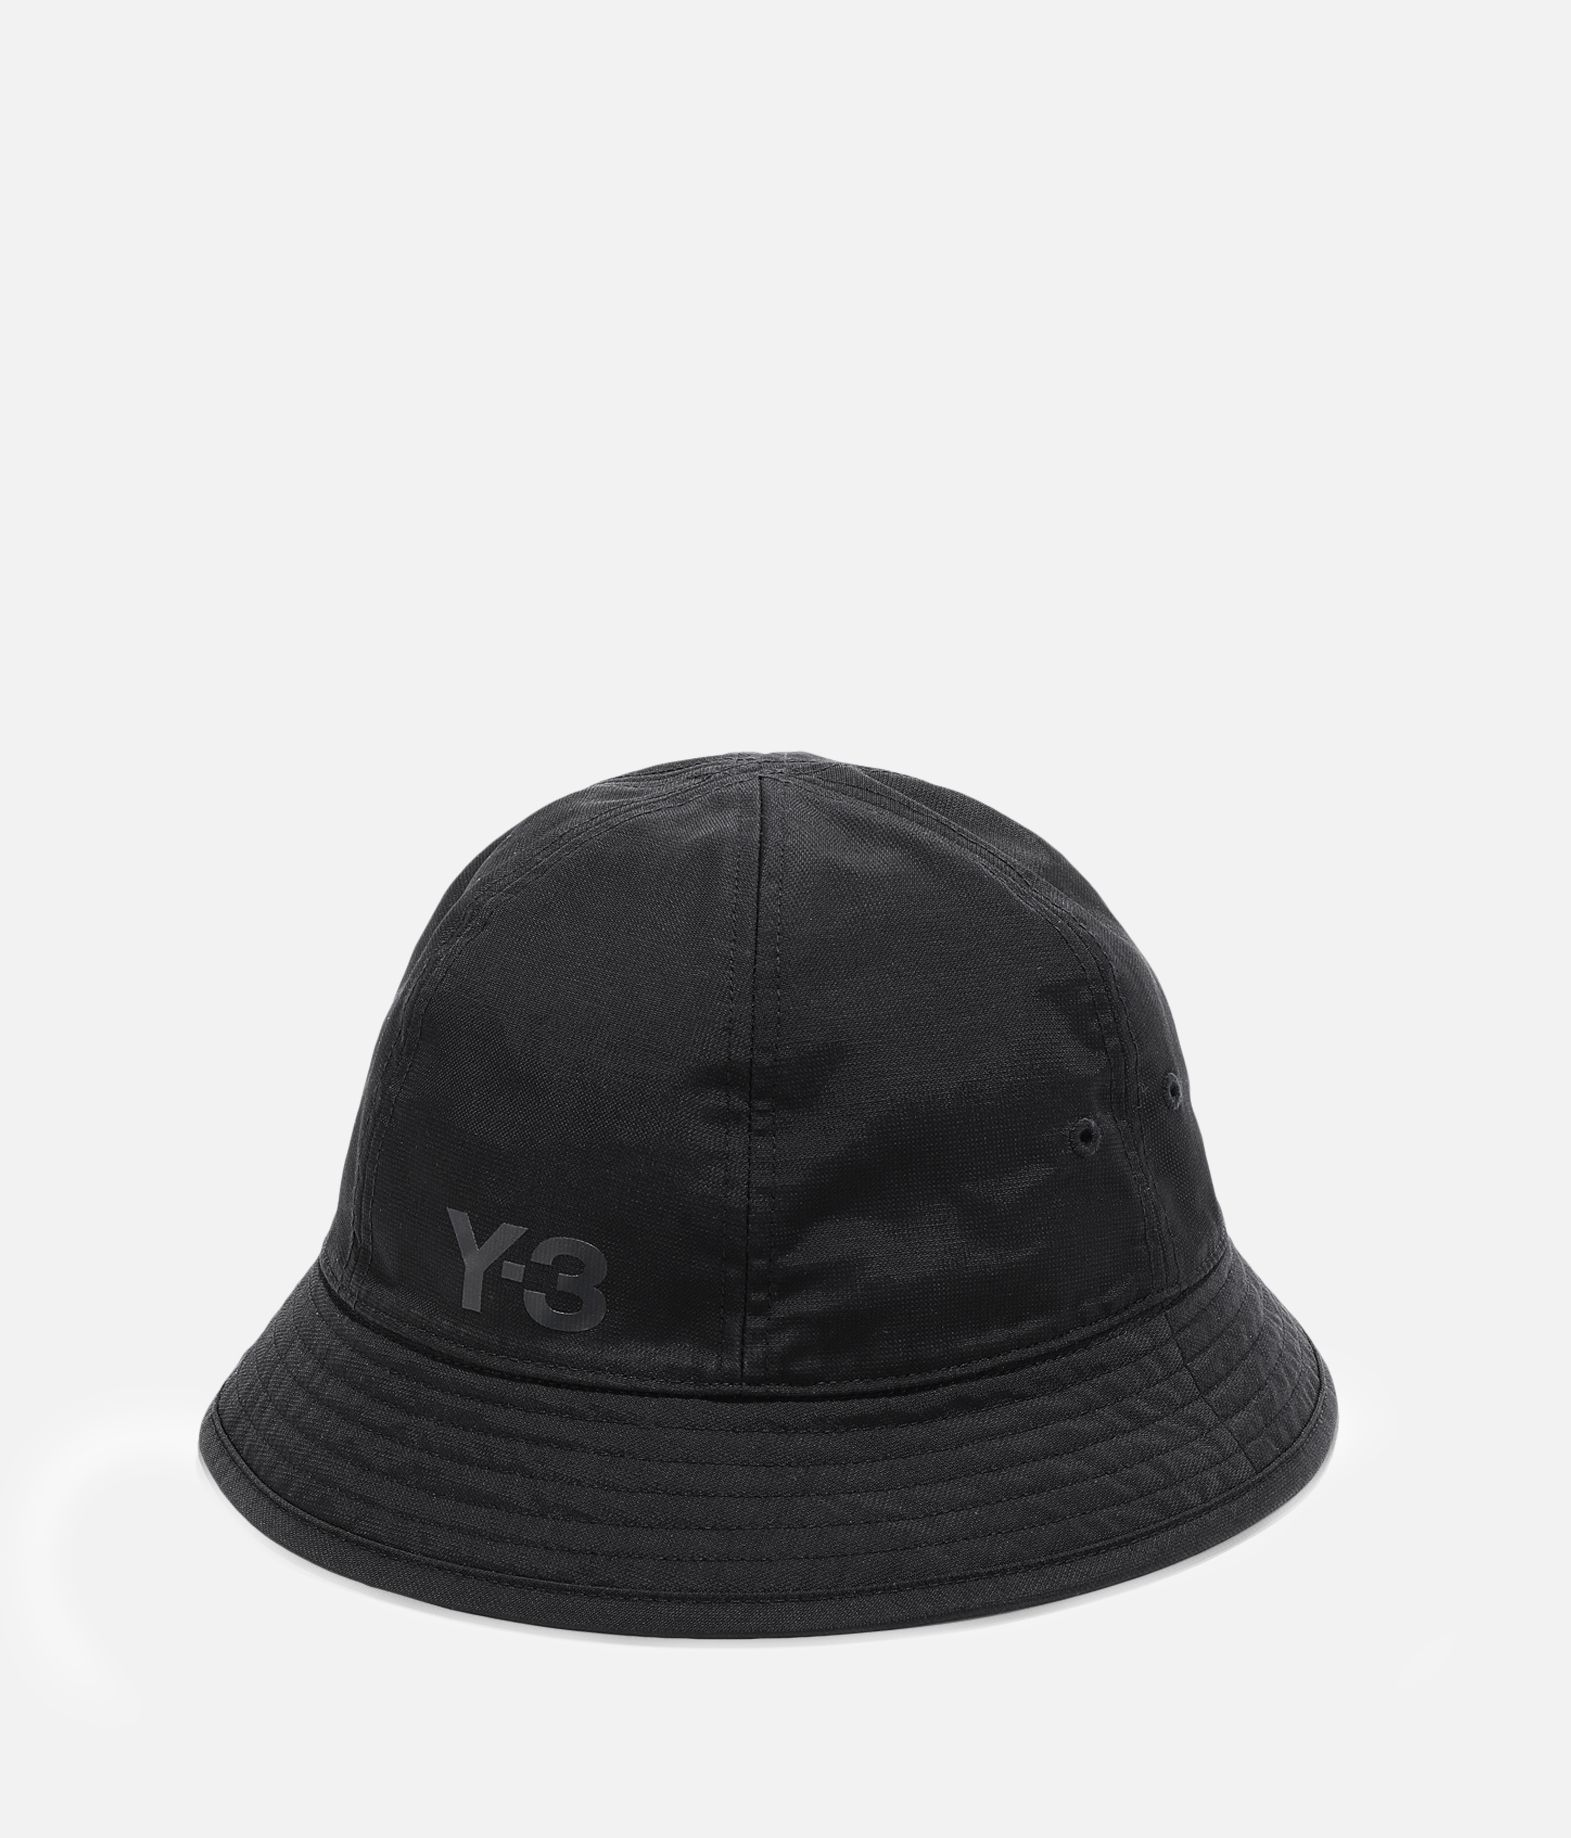 Y-3 Y-3 Bucket Hat Cap E f